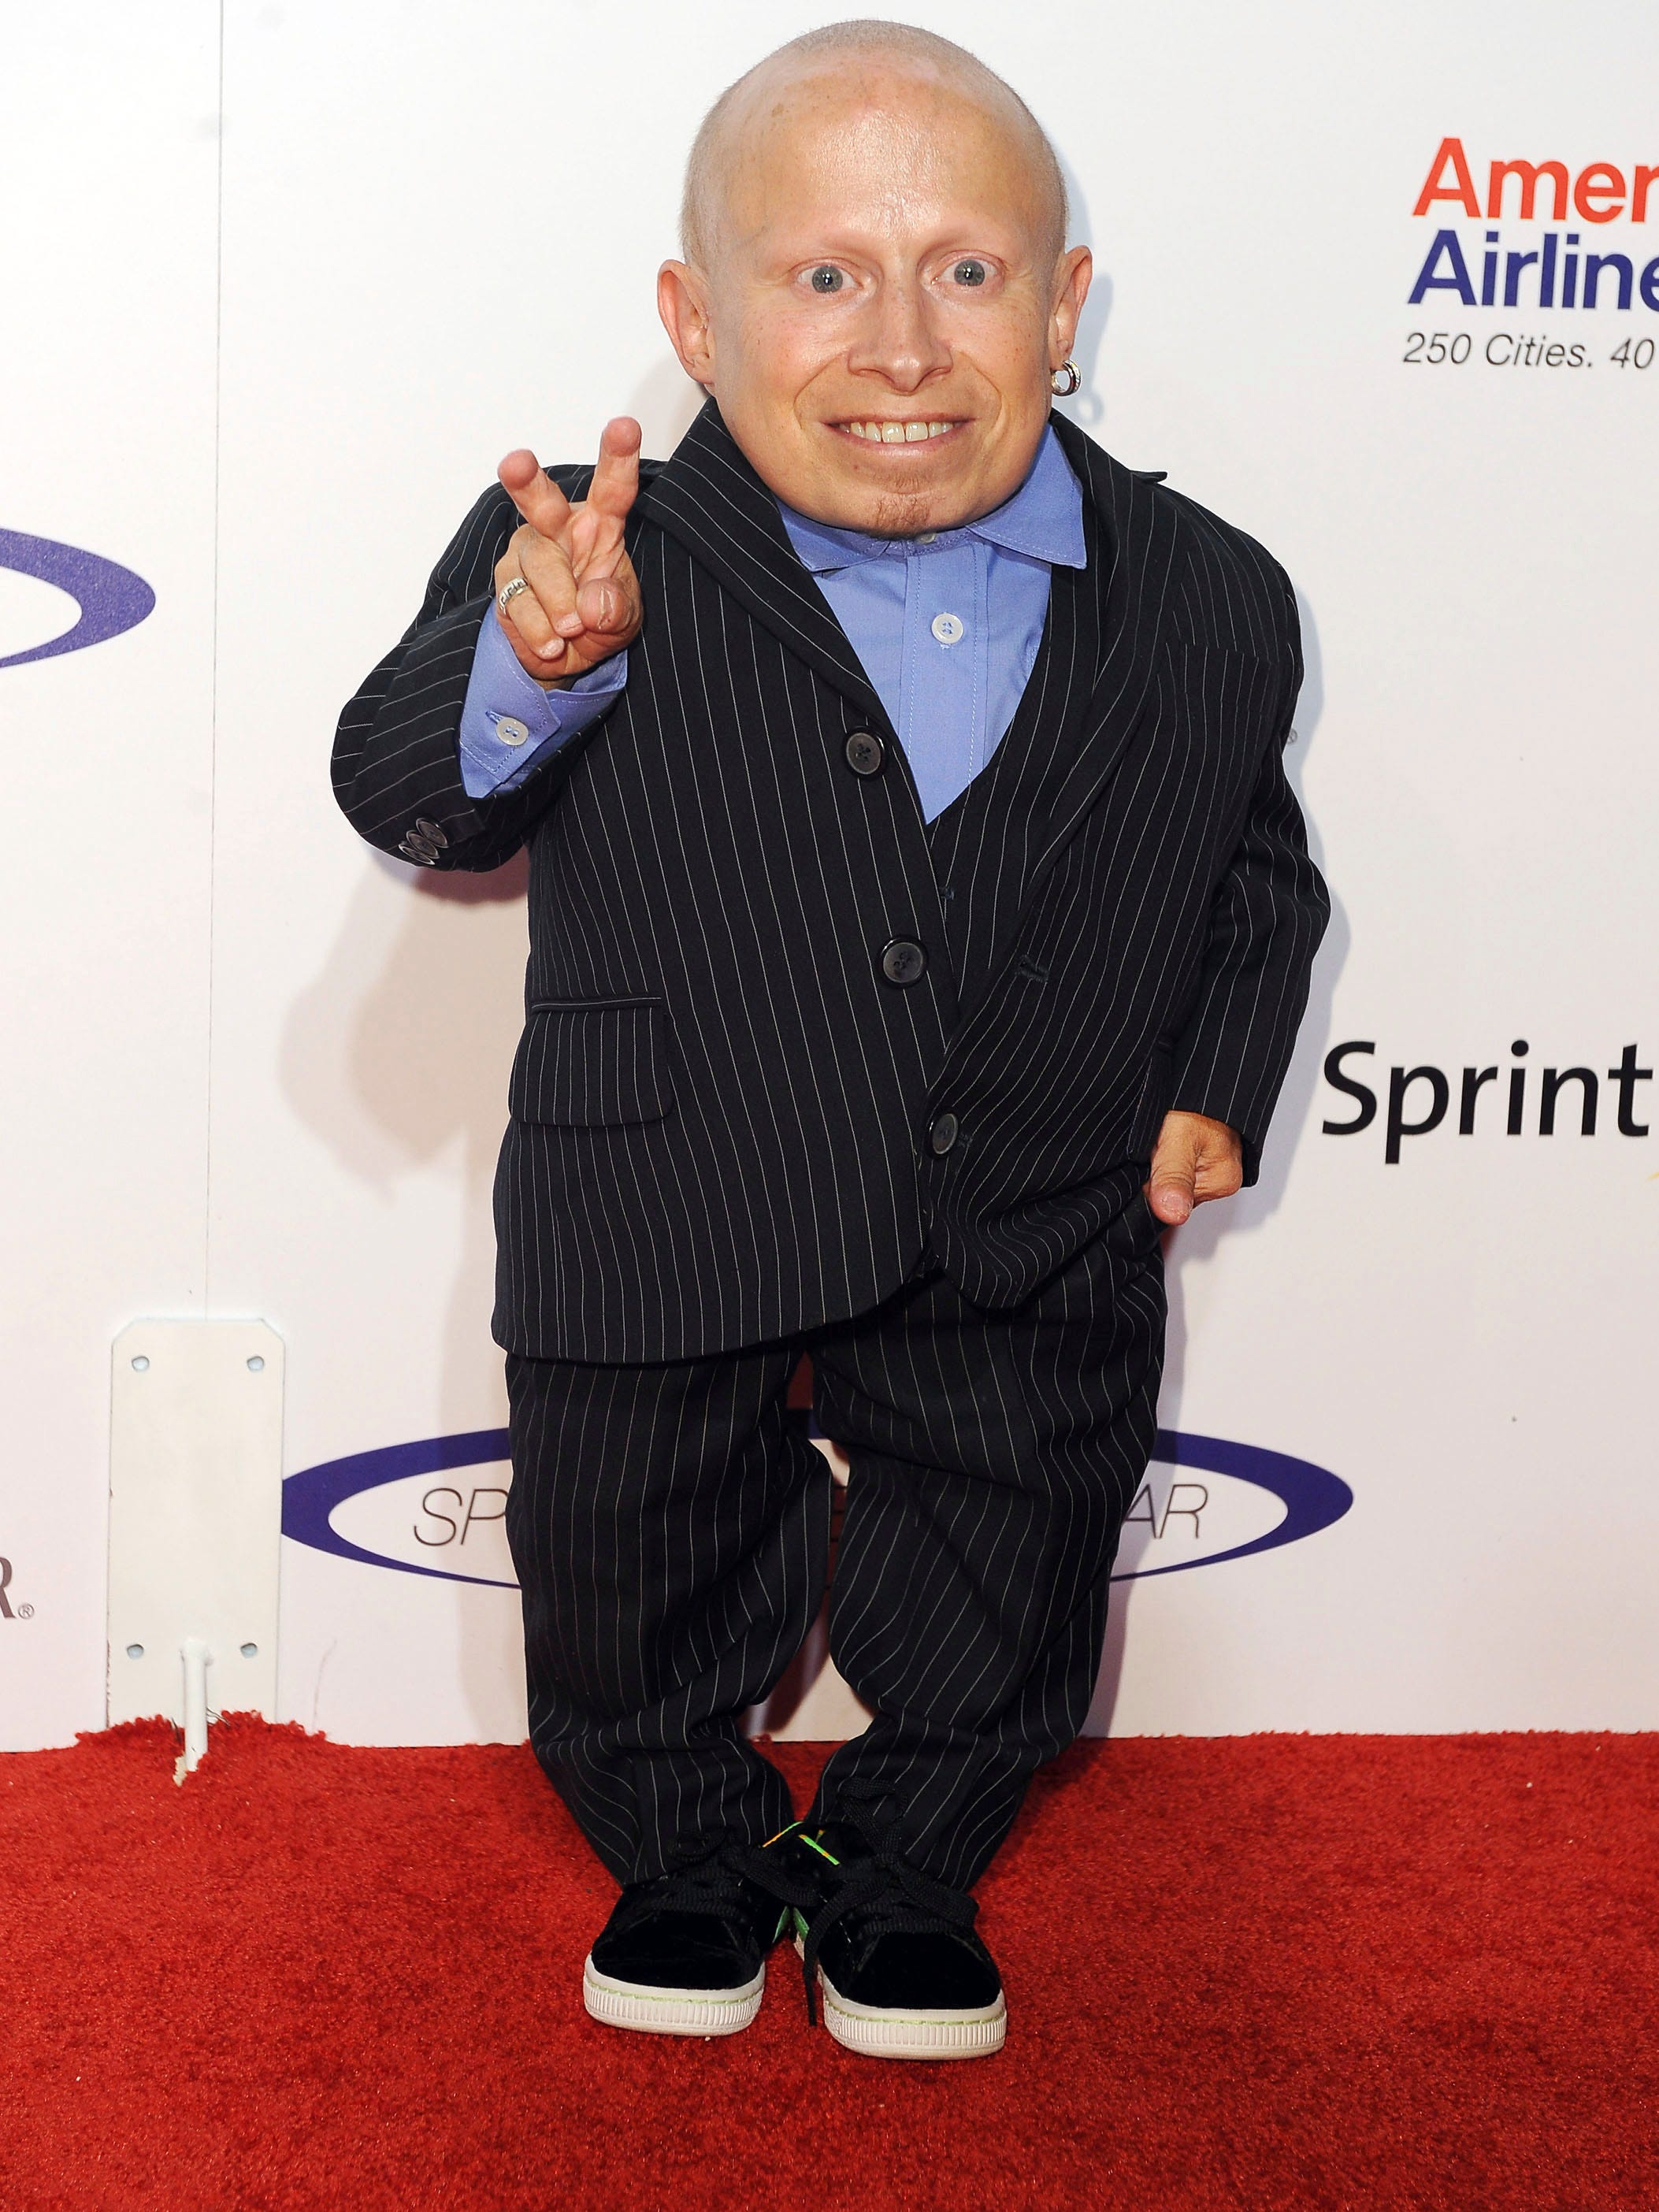 Austin Powers' star Verne Troyer dead at 49